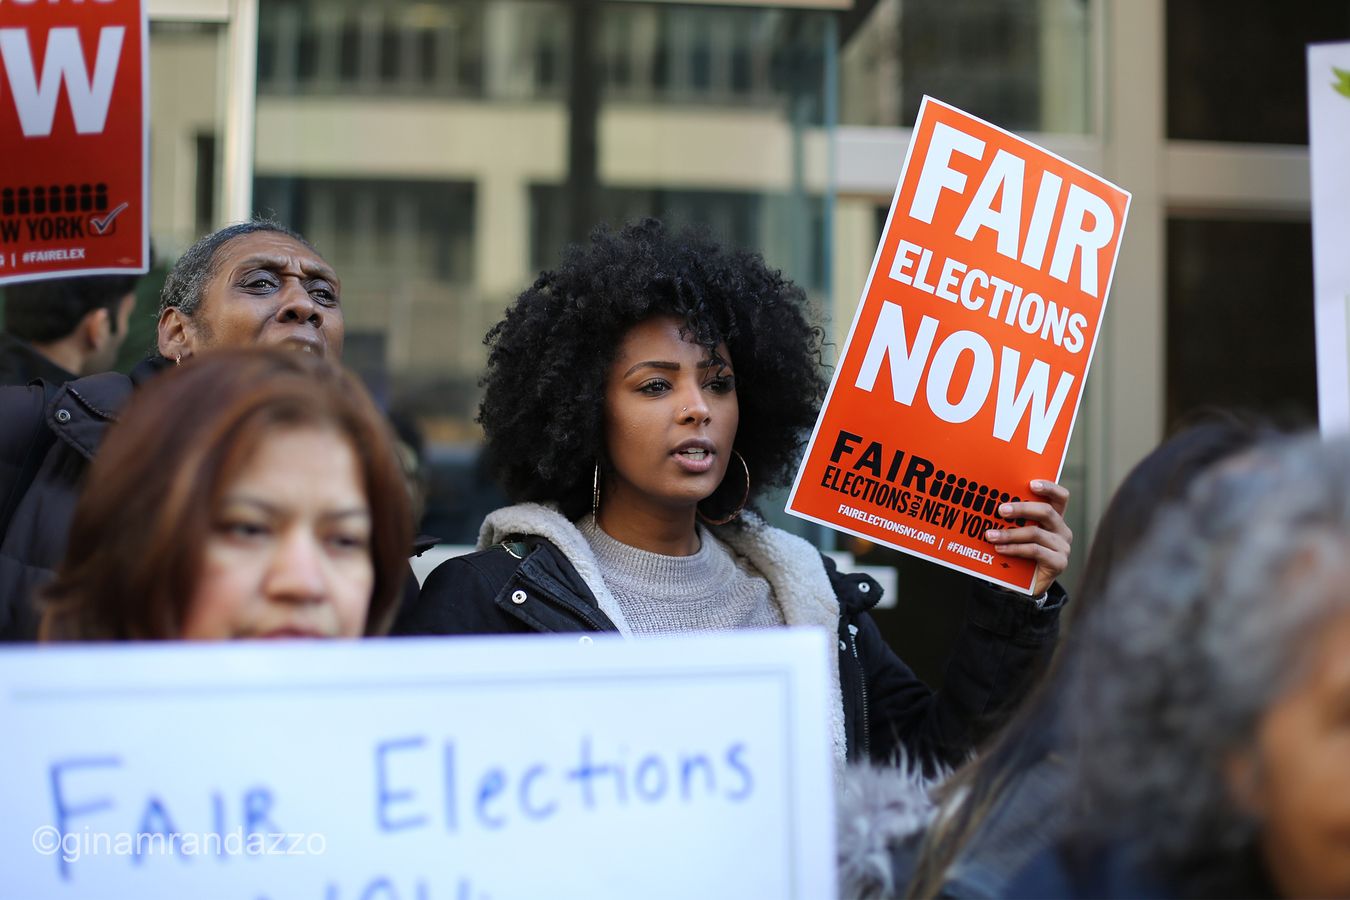 Current Project Fair Elections For NY NYC Office of the Governor 11/21/19